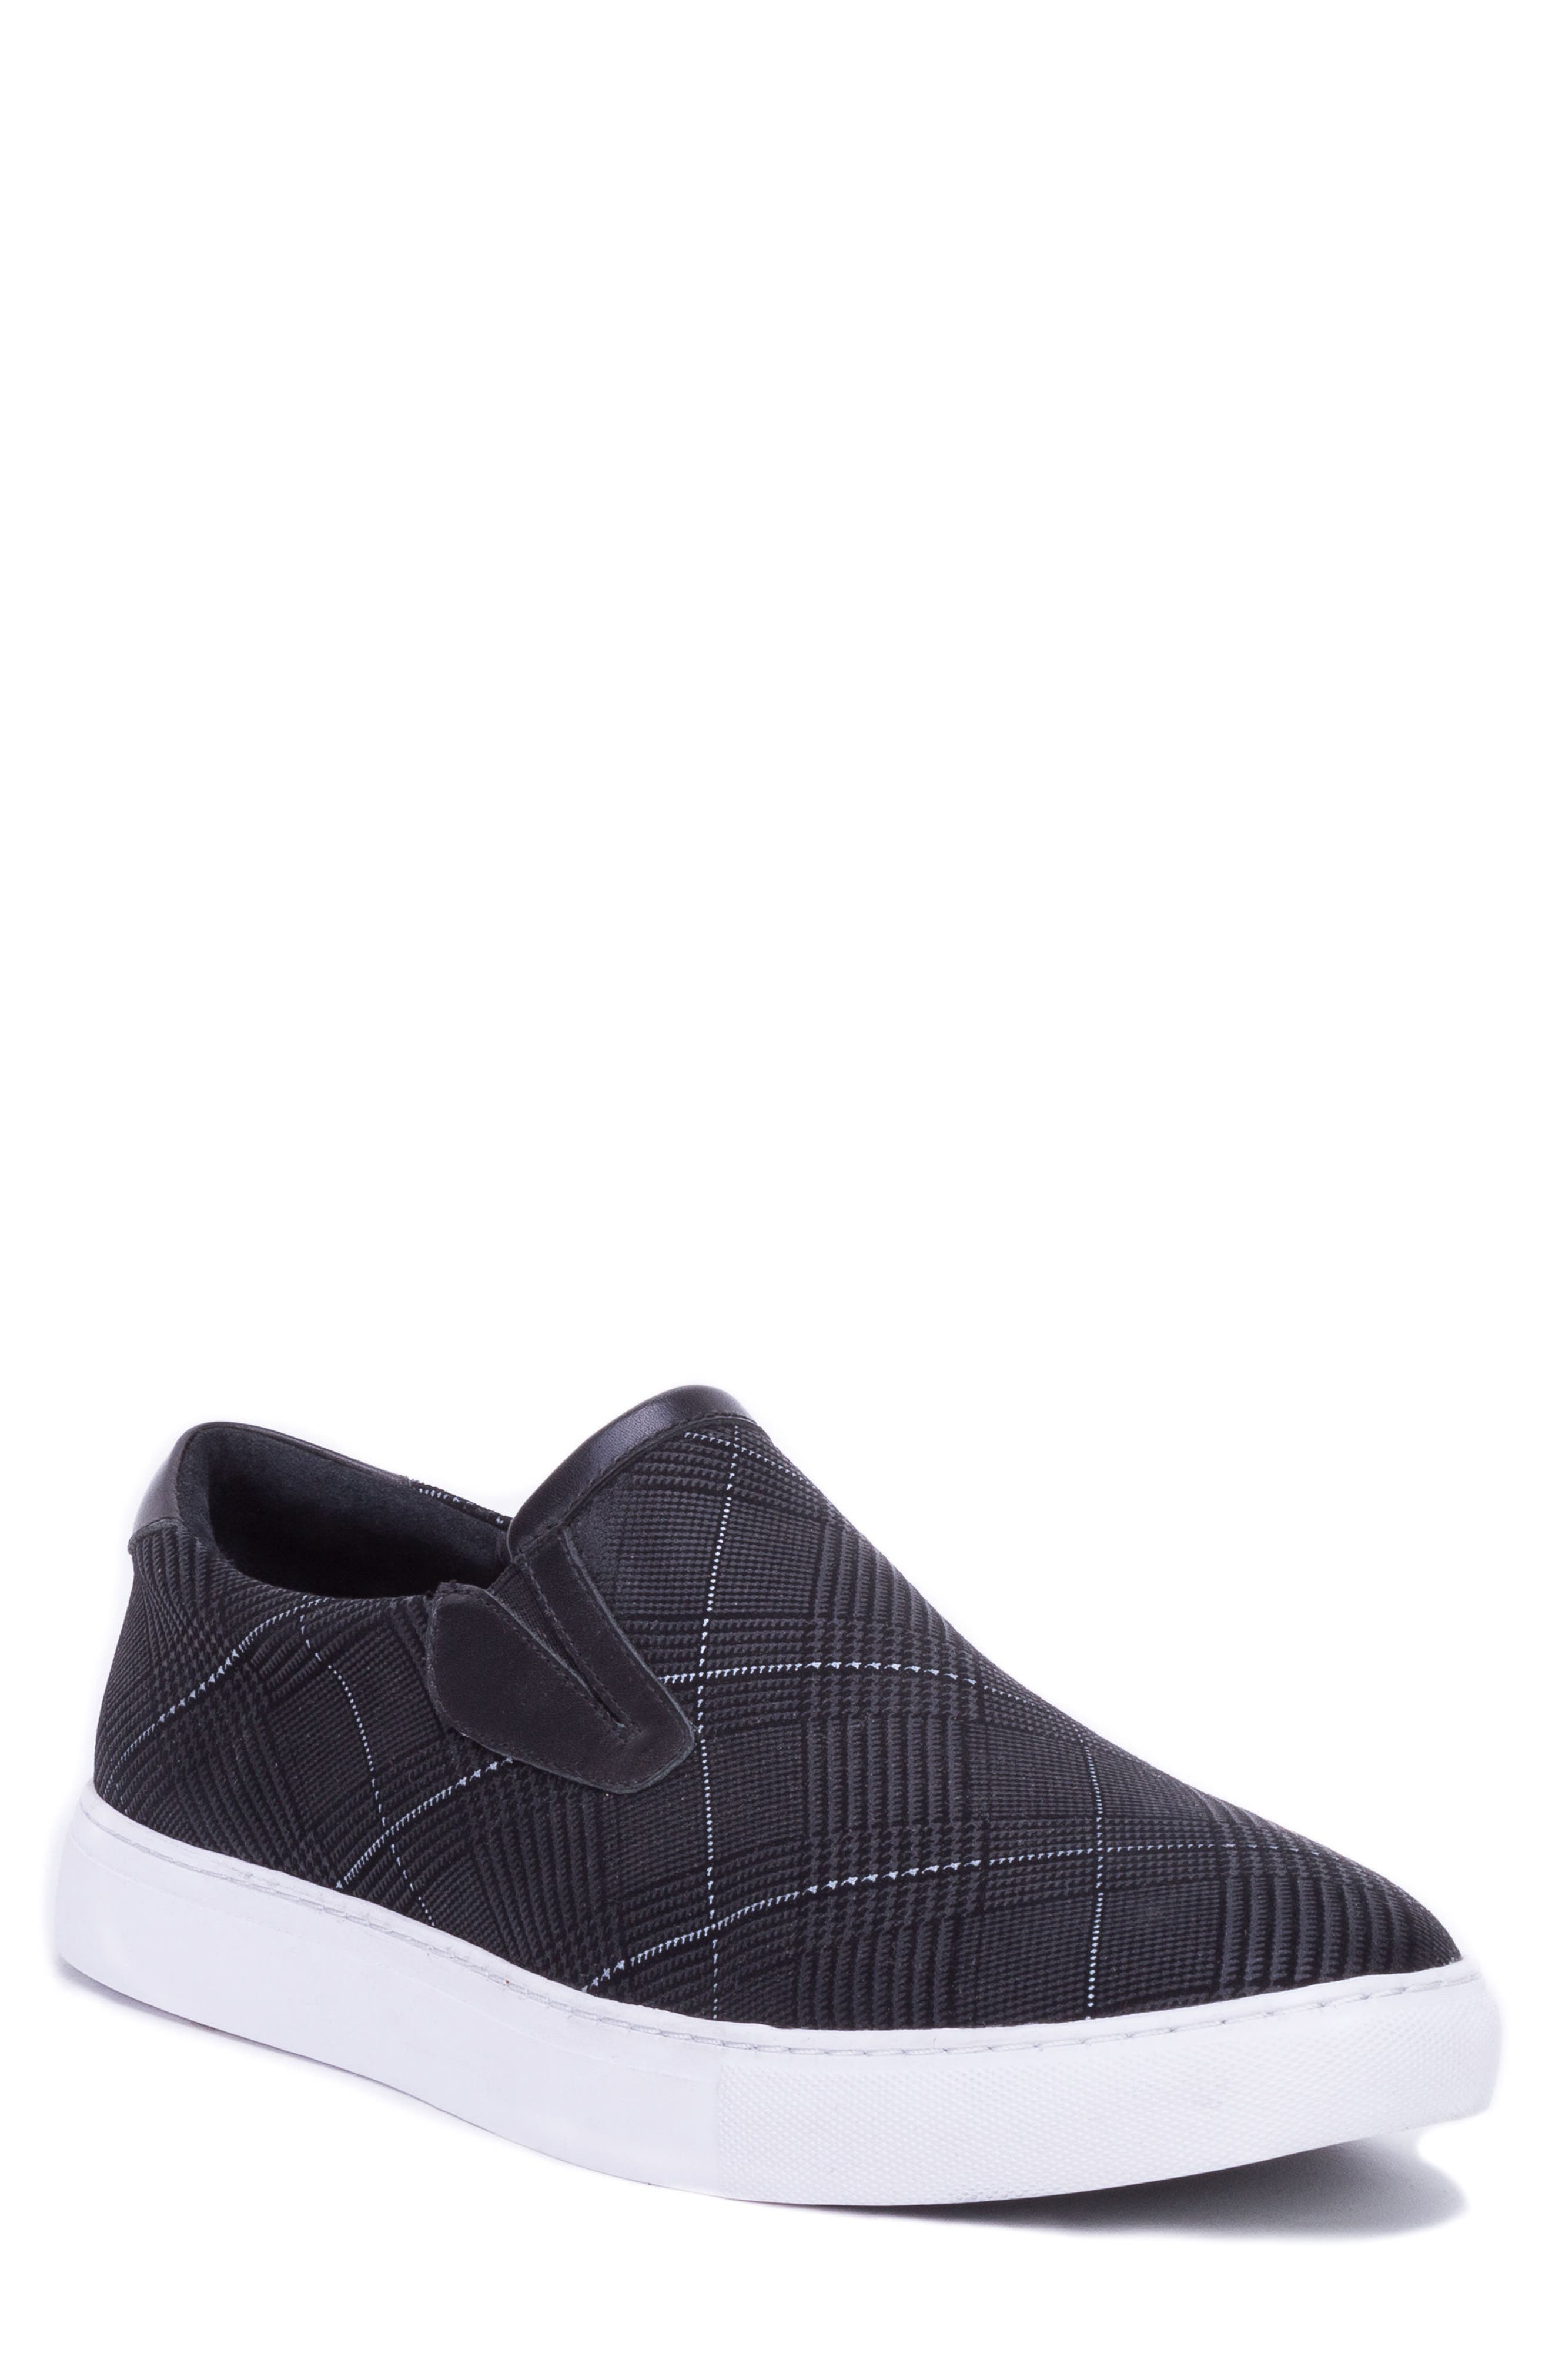 Kerby Slip-On Sneaker,                         Main,                         color, BLACK SUEDE